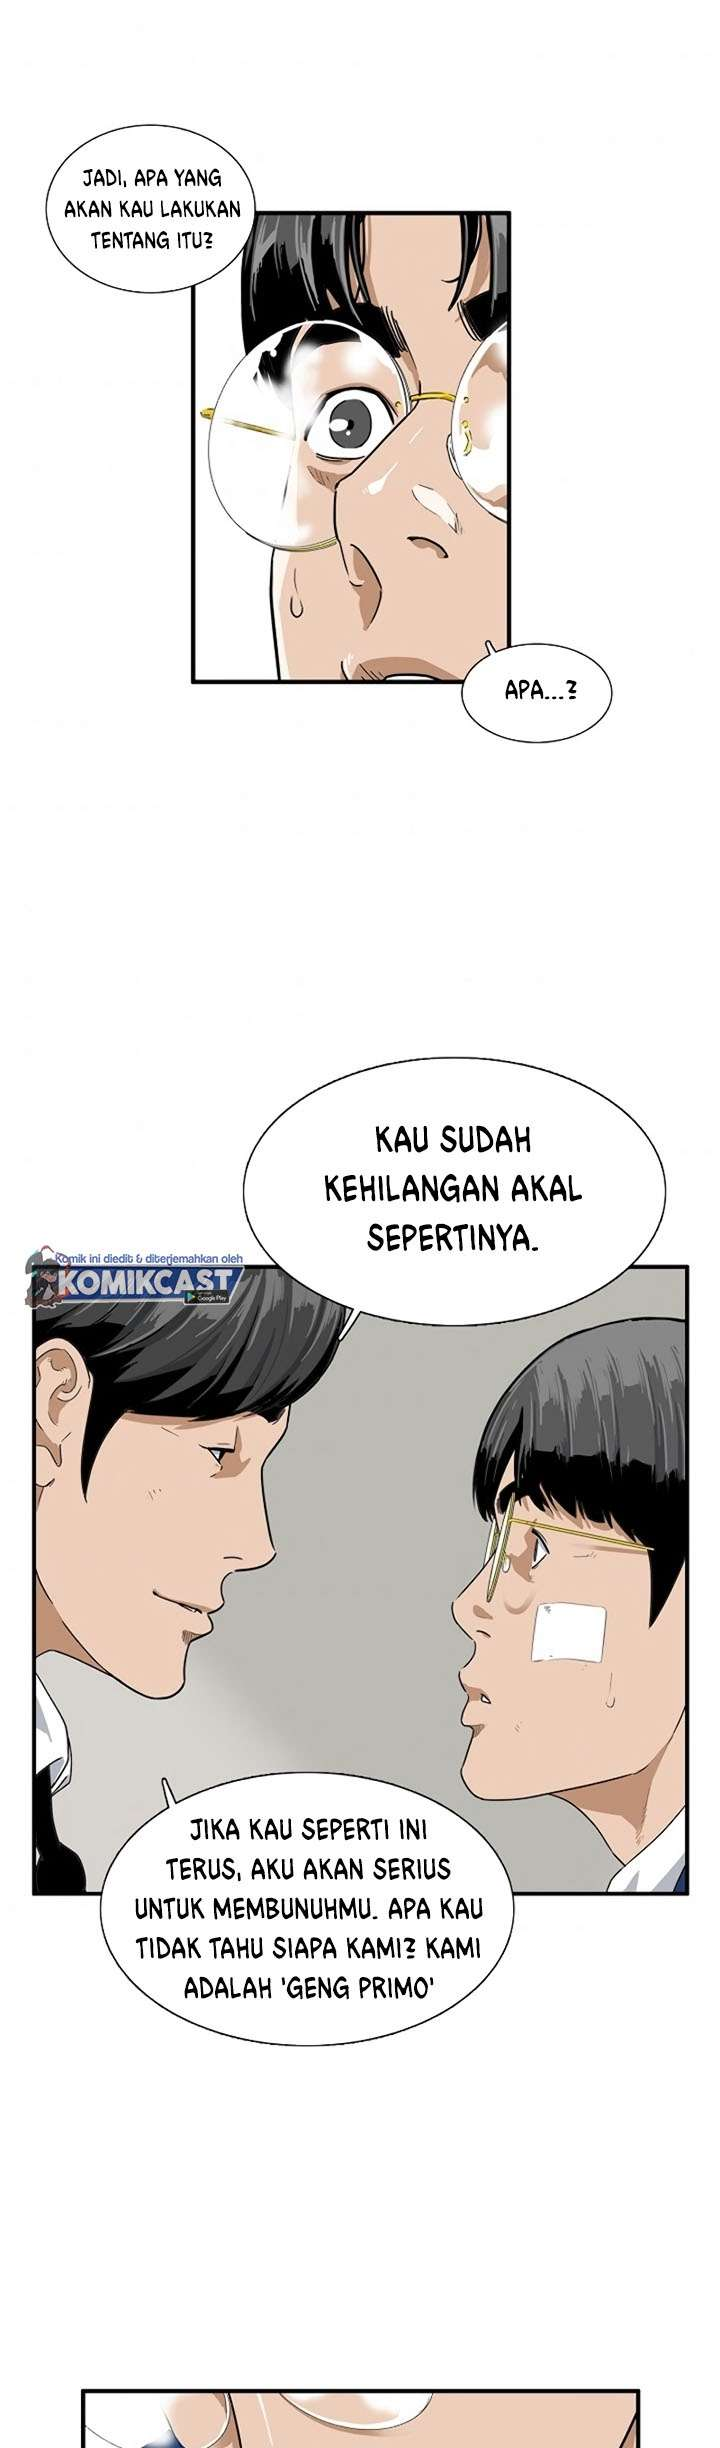 This is the Law Chapter 02 Bahasa Indonesia page 61